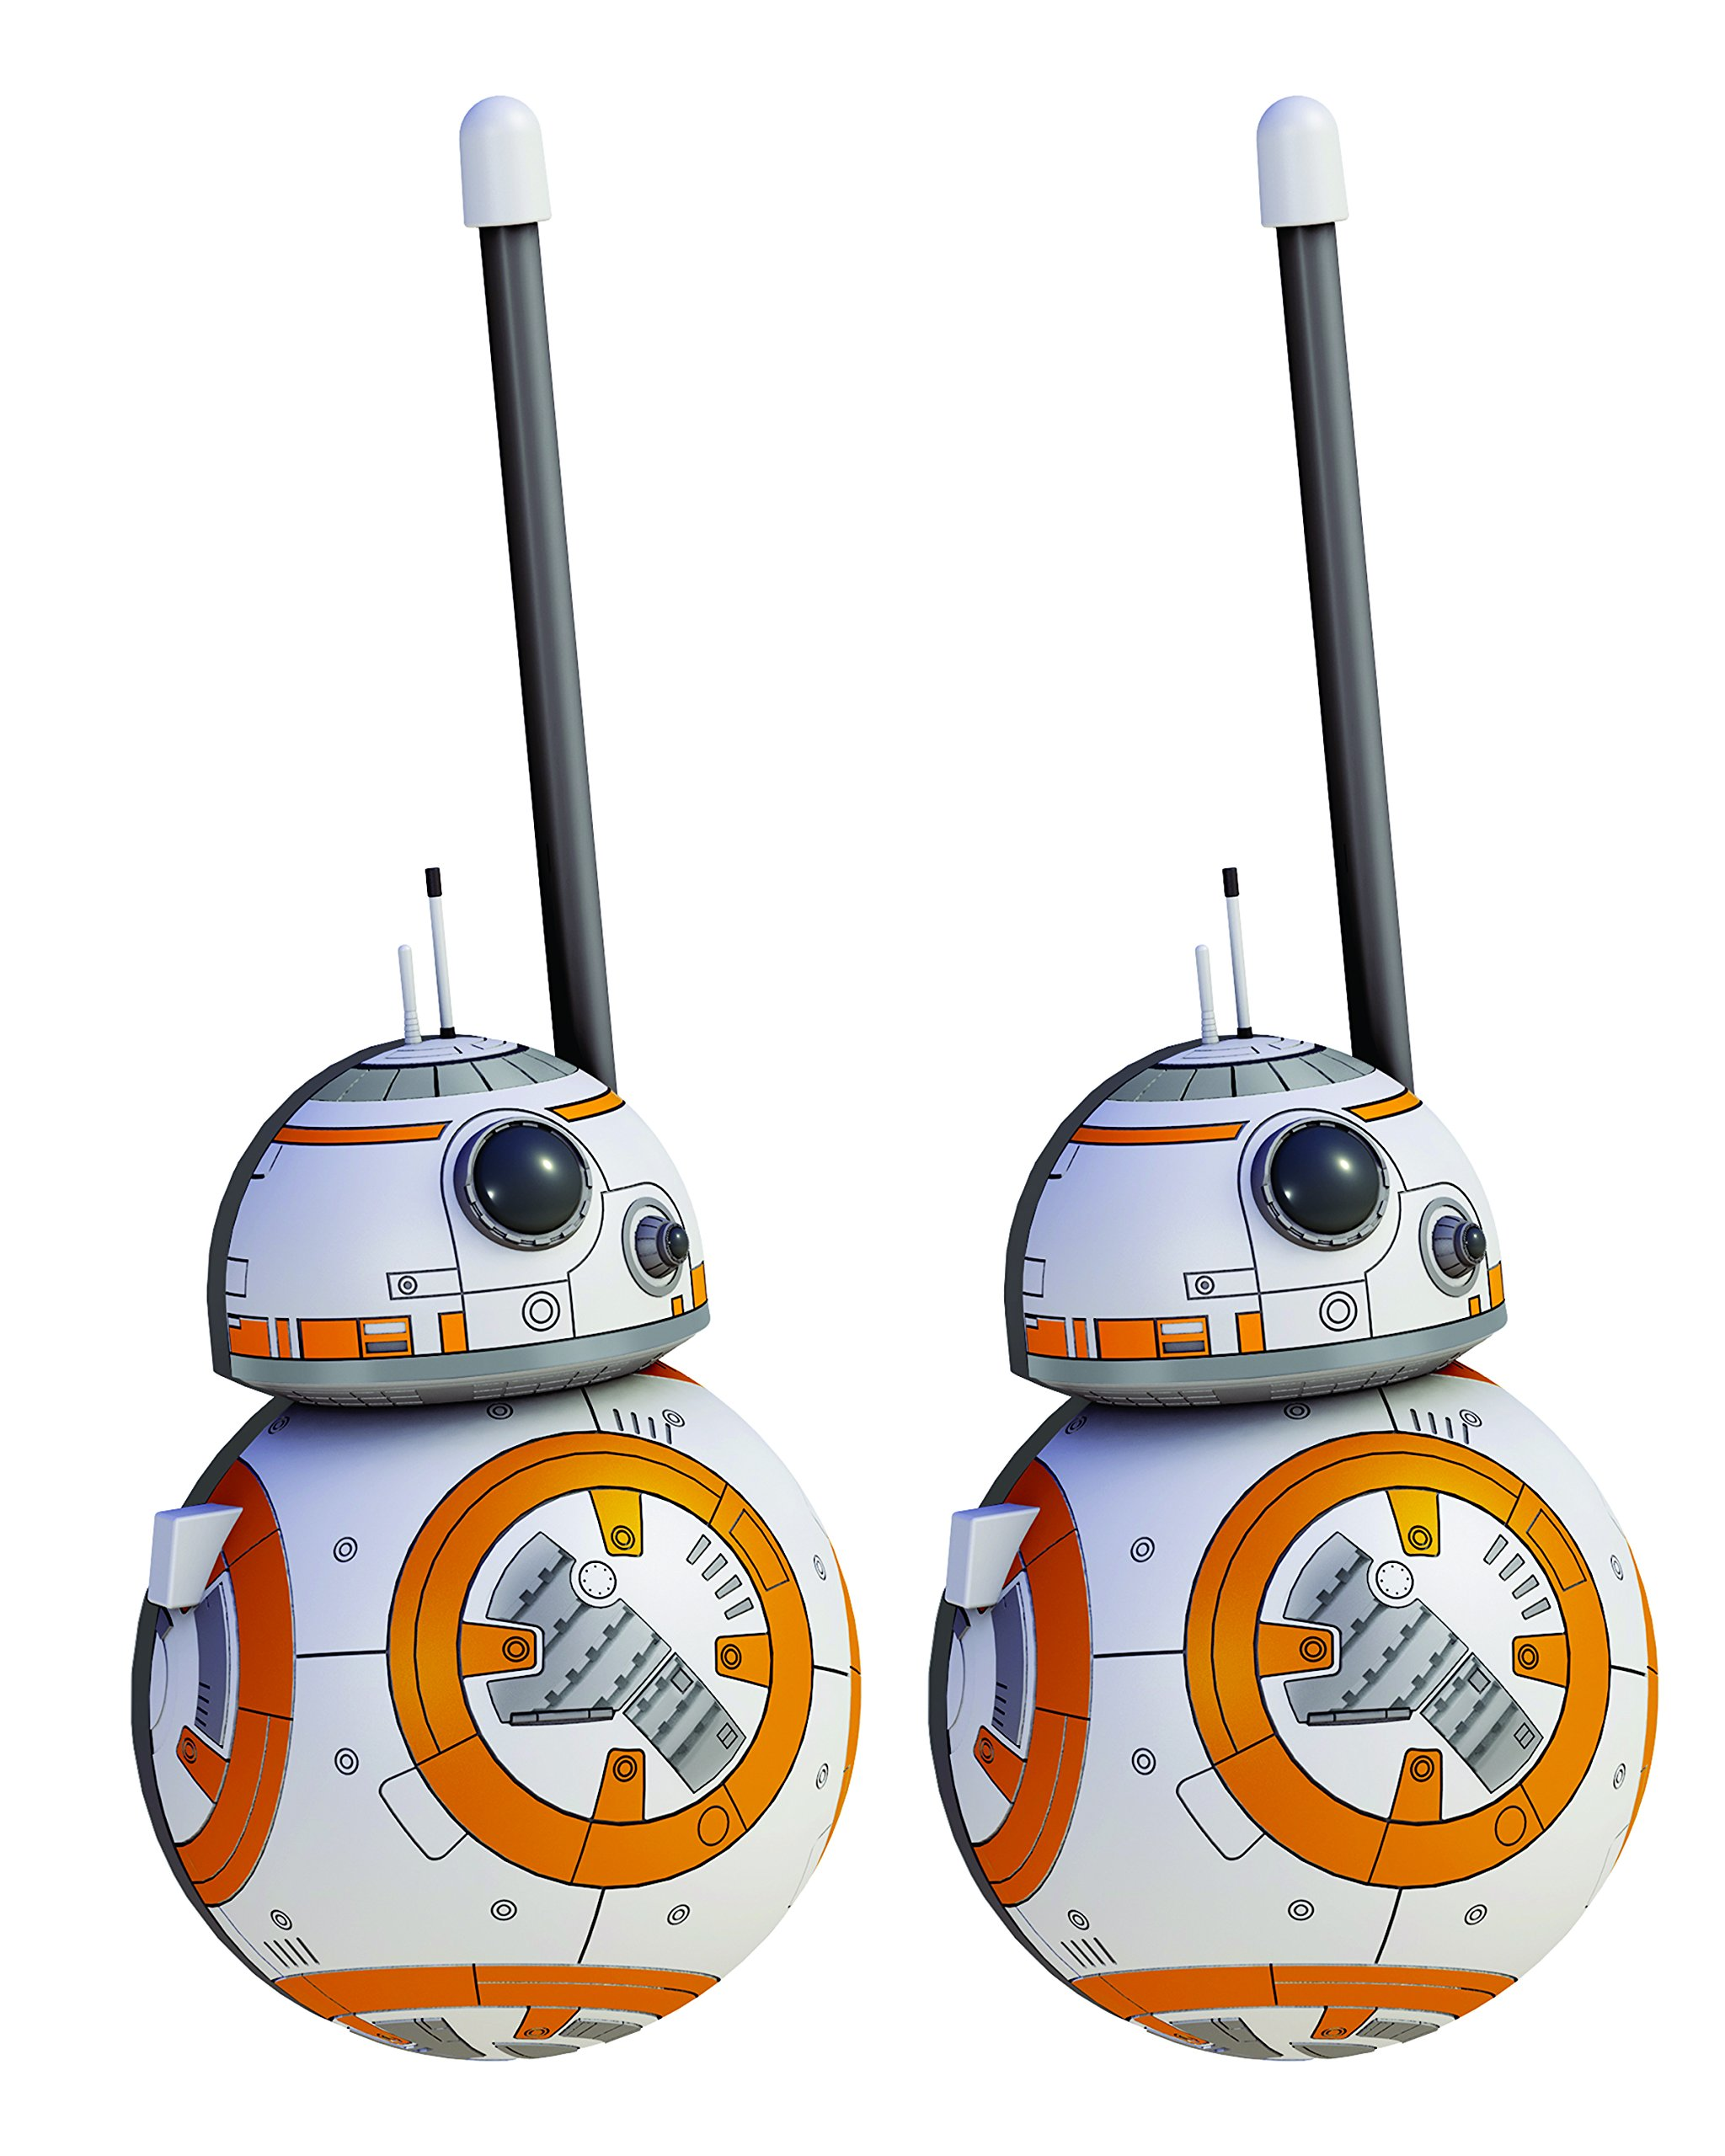 Star Wars BB8 Walkie Talkies for Kids Static Free Extended Range Kid Friendly Easy to Use 2 Way Walkie Talkies